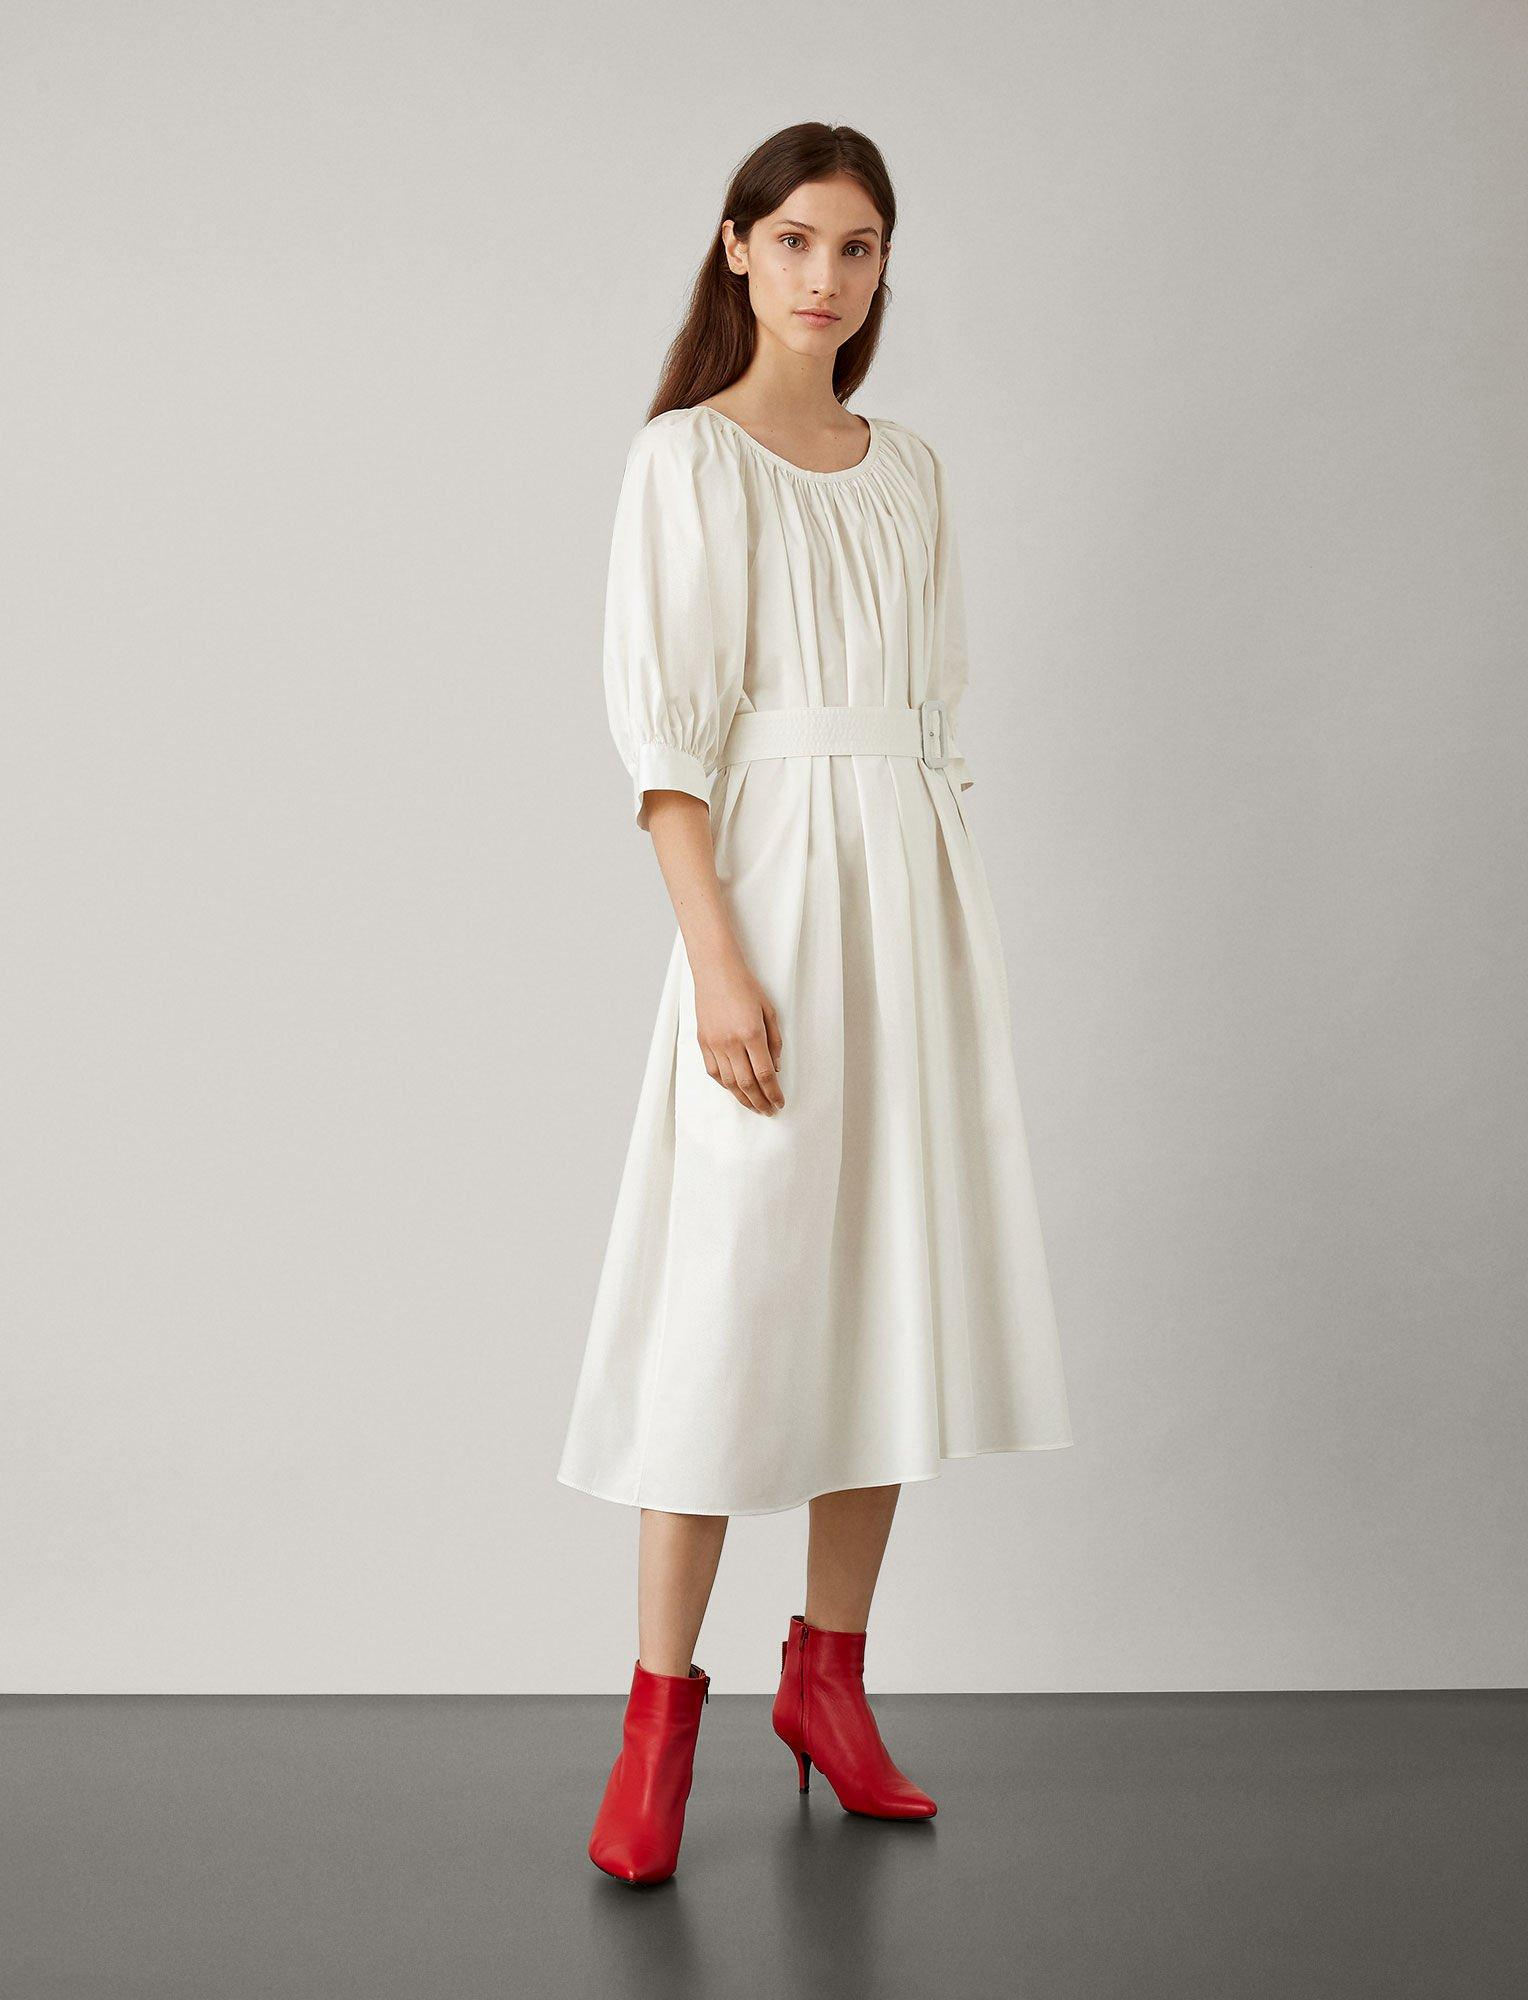 e43053cae16686 ... White Shan Cotton Dress - Lyst. Visit JOSEPH. Tap to visit site